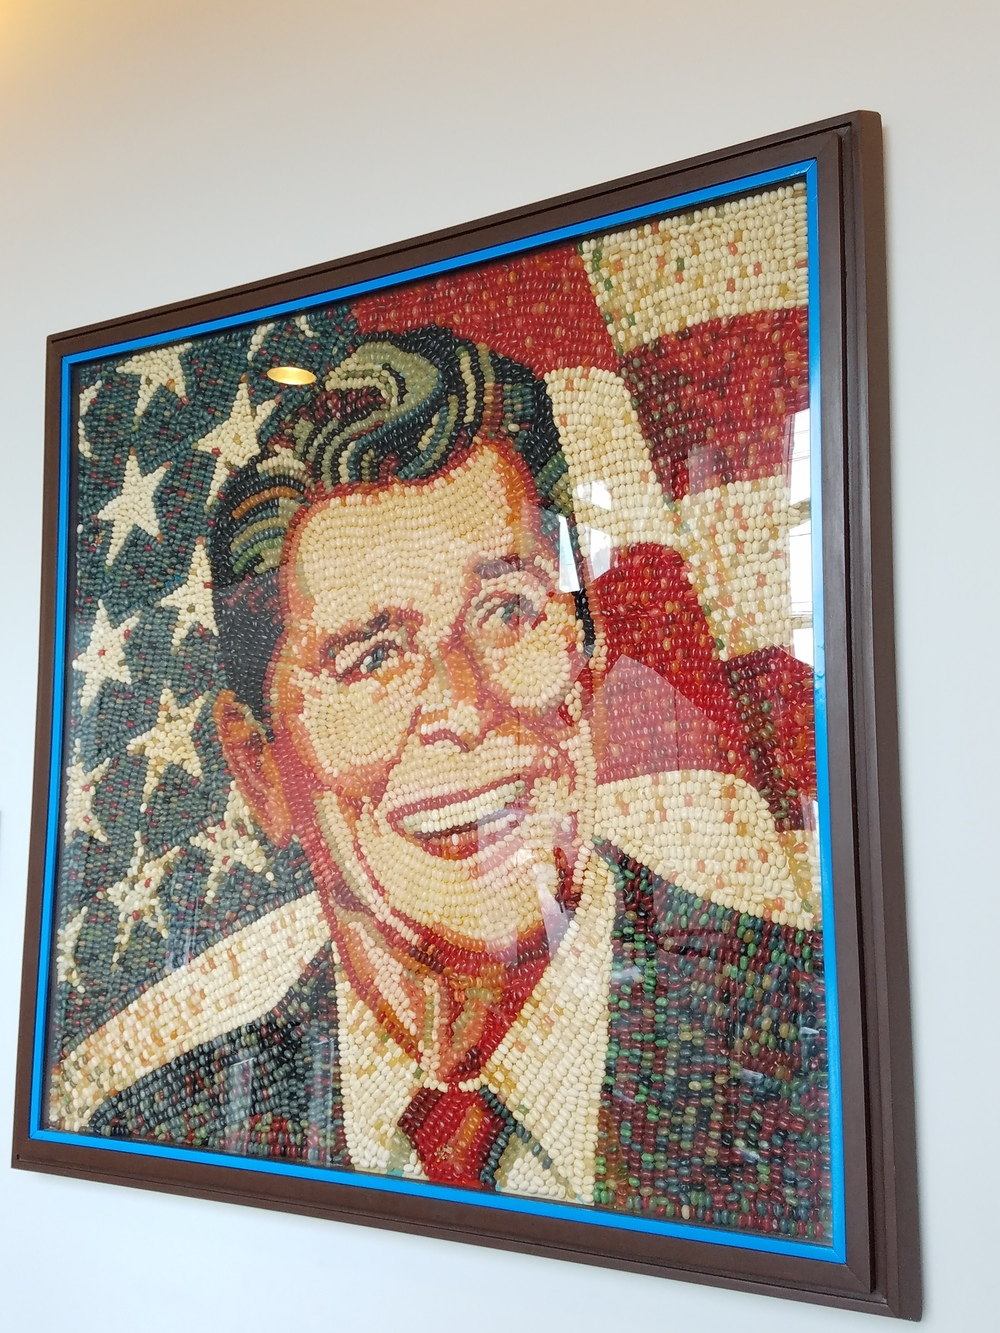 Made of jellybeans, of course.